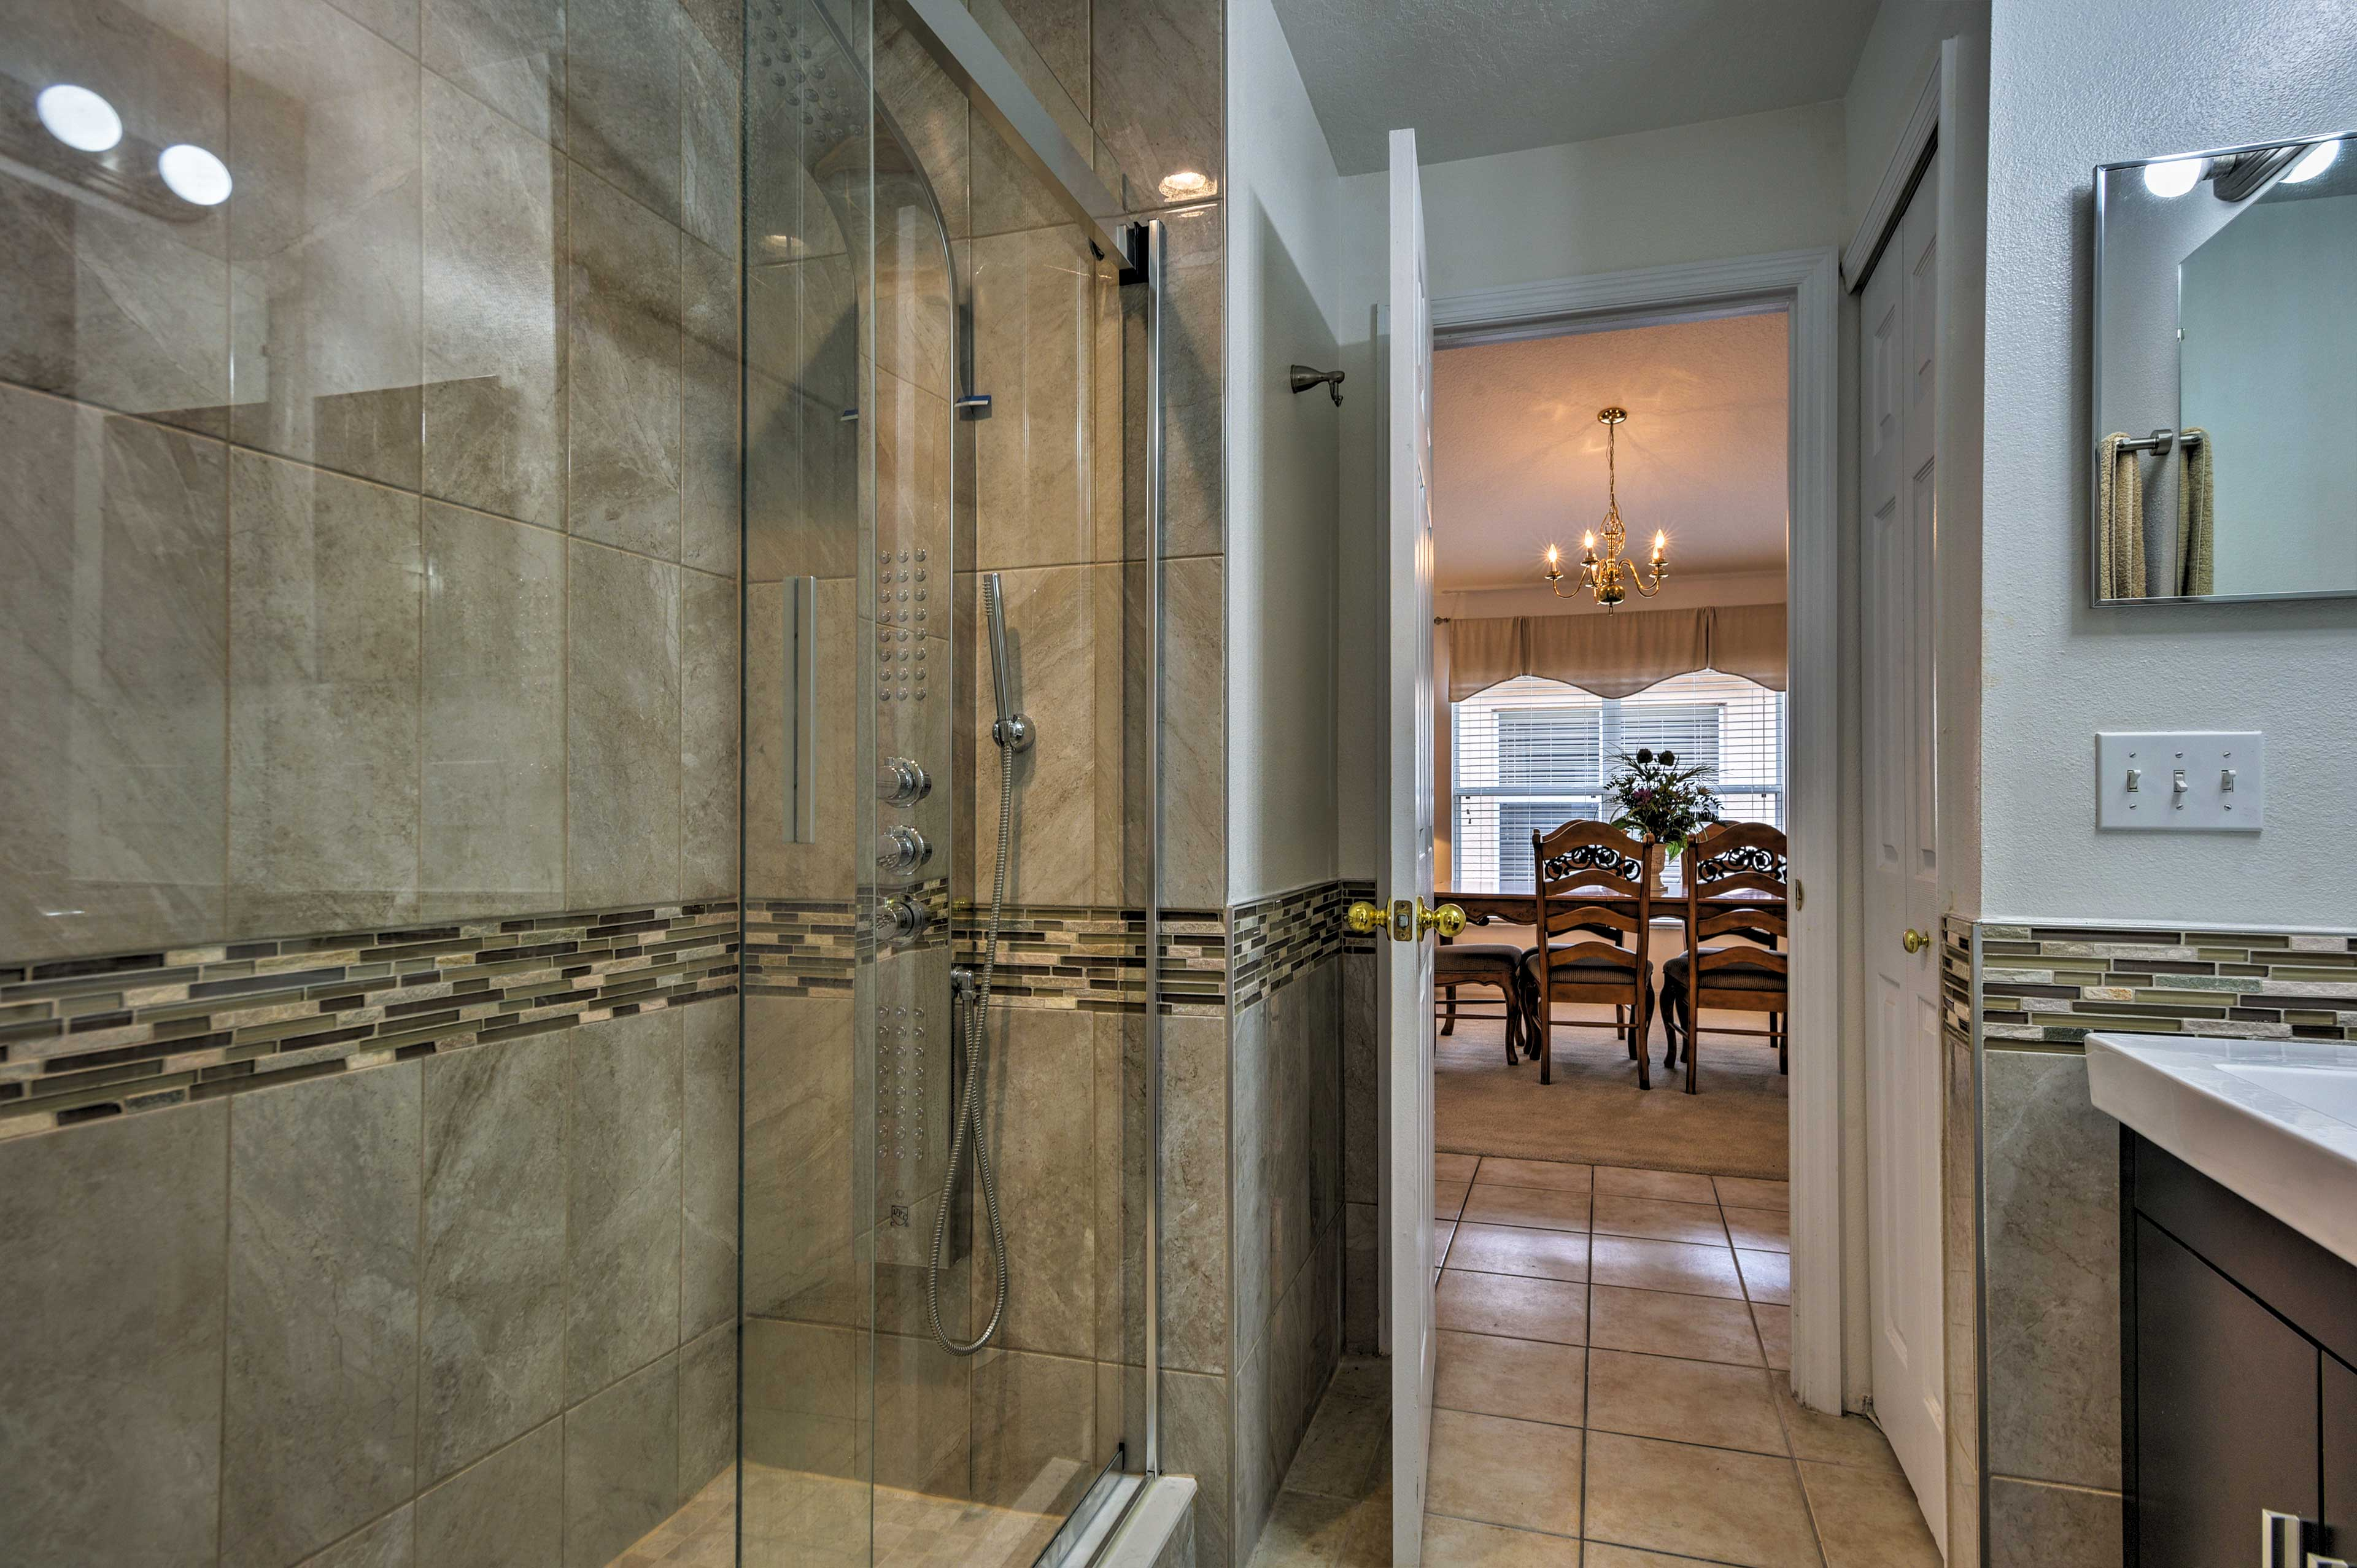 This walk-in shower offers a new showerhead for a refreshing rinse.